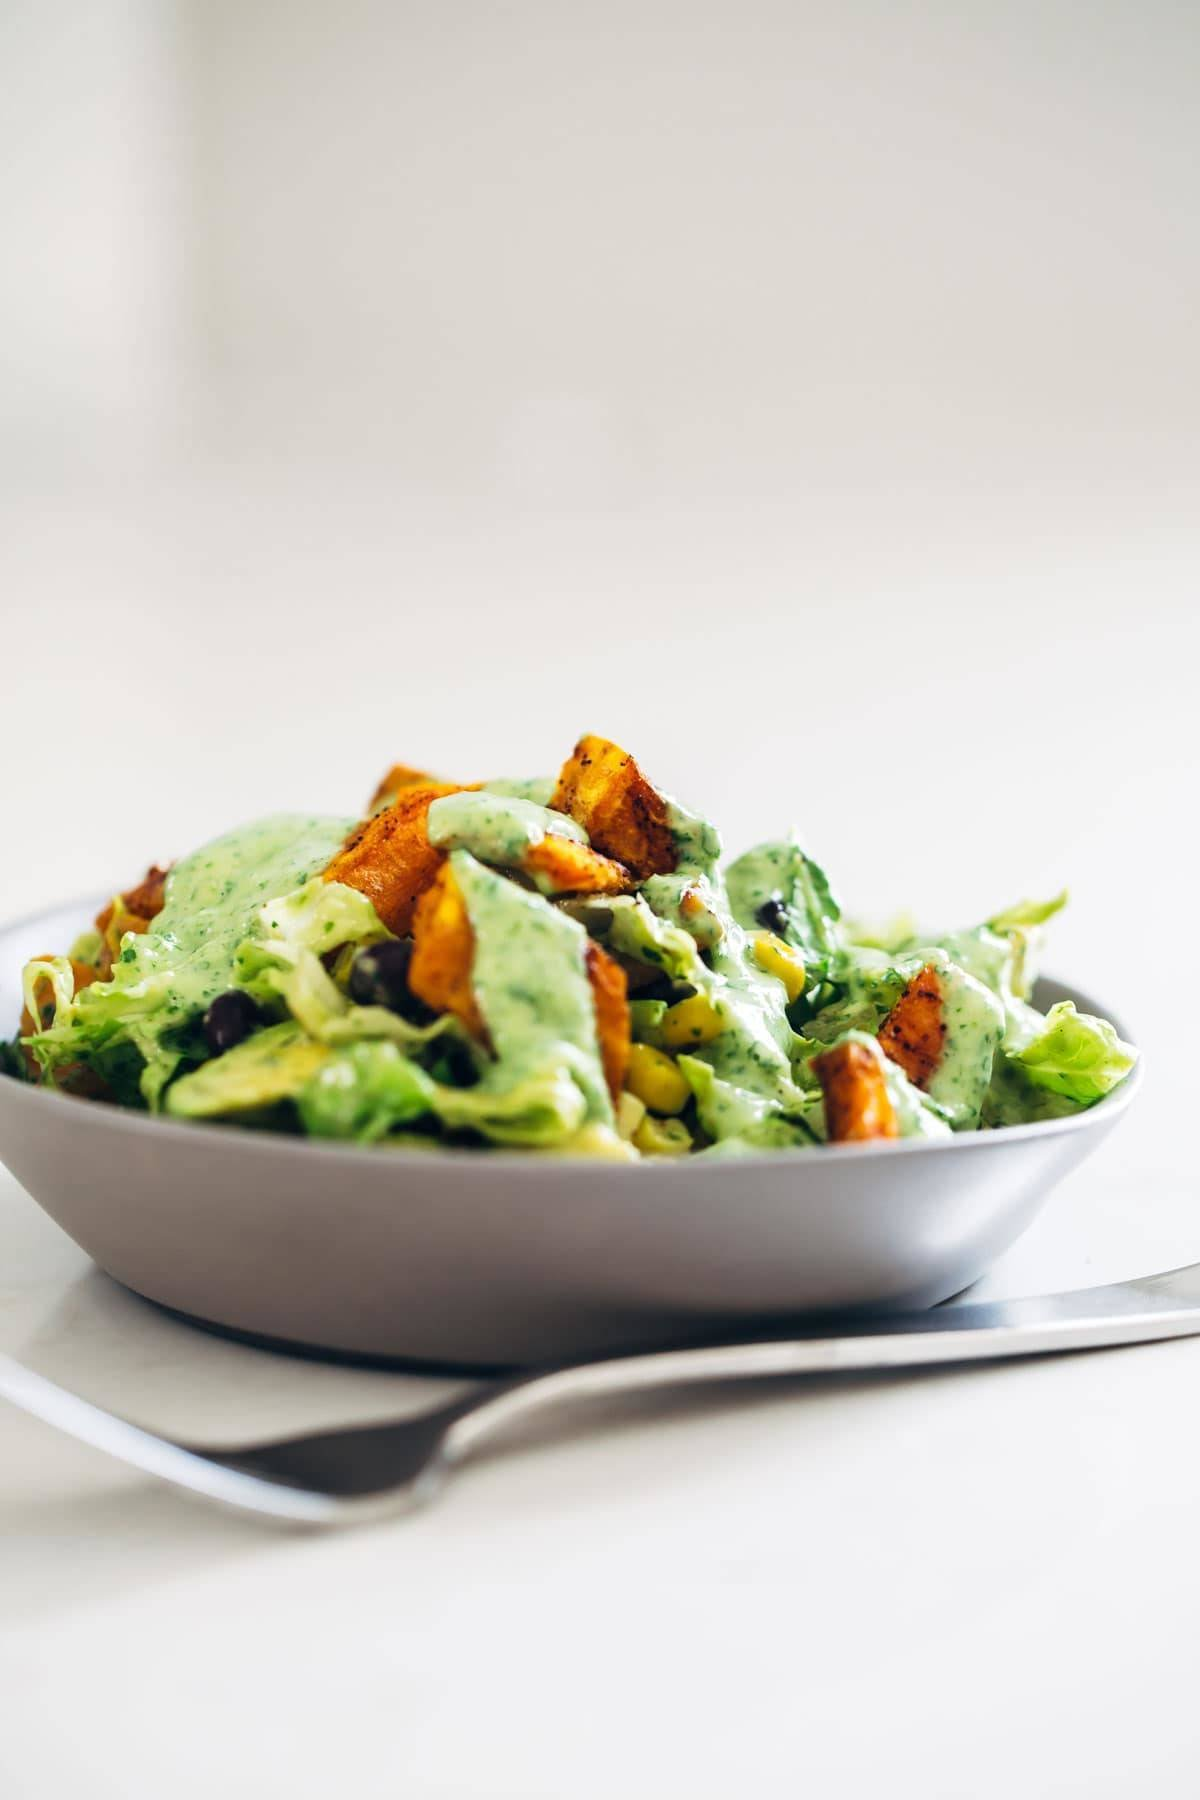 Southwestern Salad in a bowl with a fork.